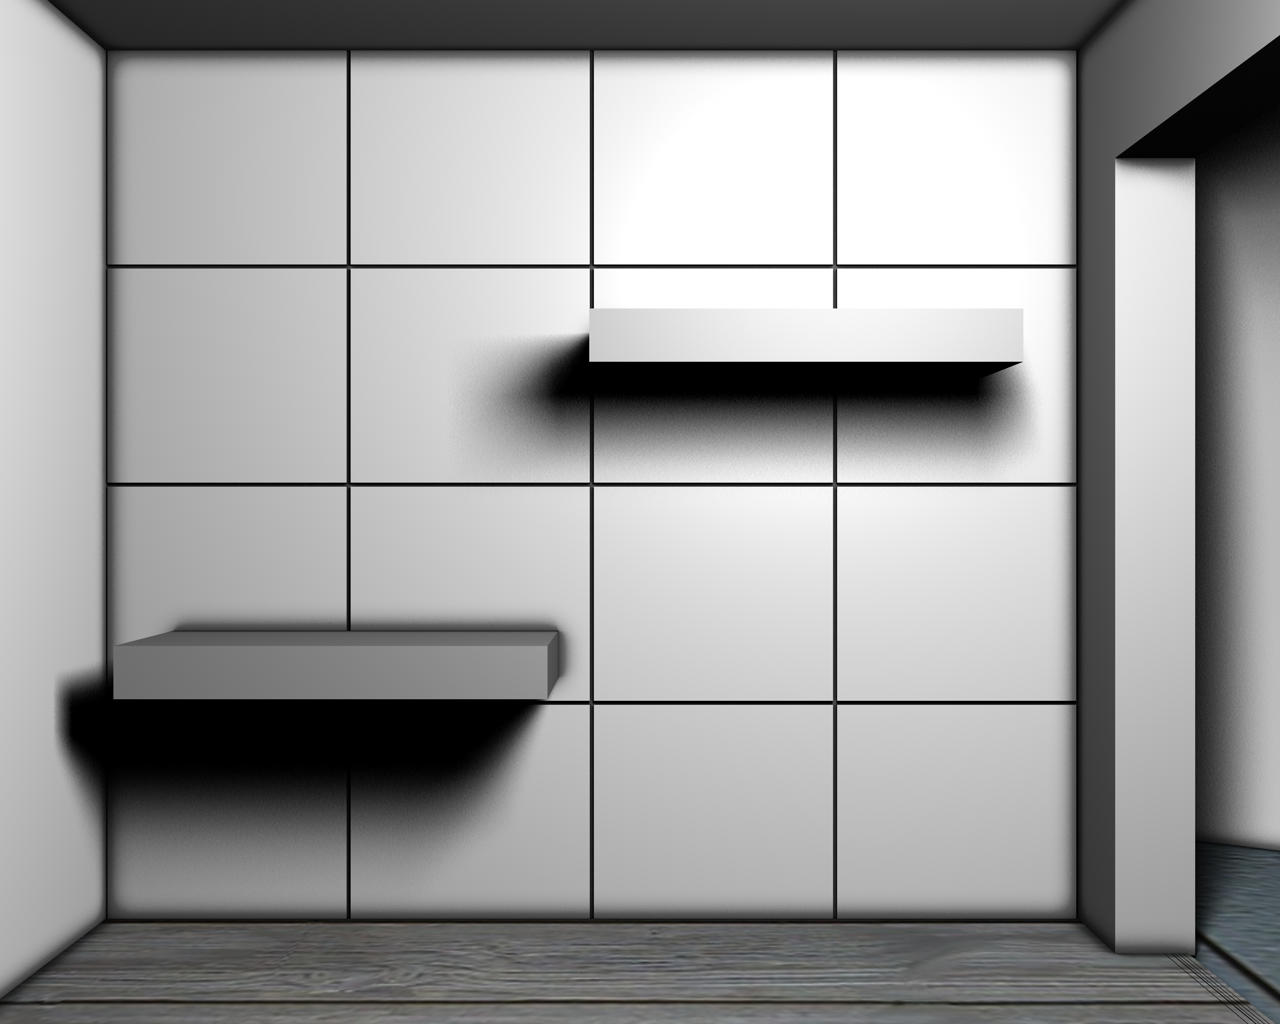 Simple Room By Woodygfx On DeviantArt